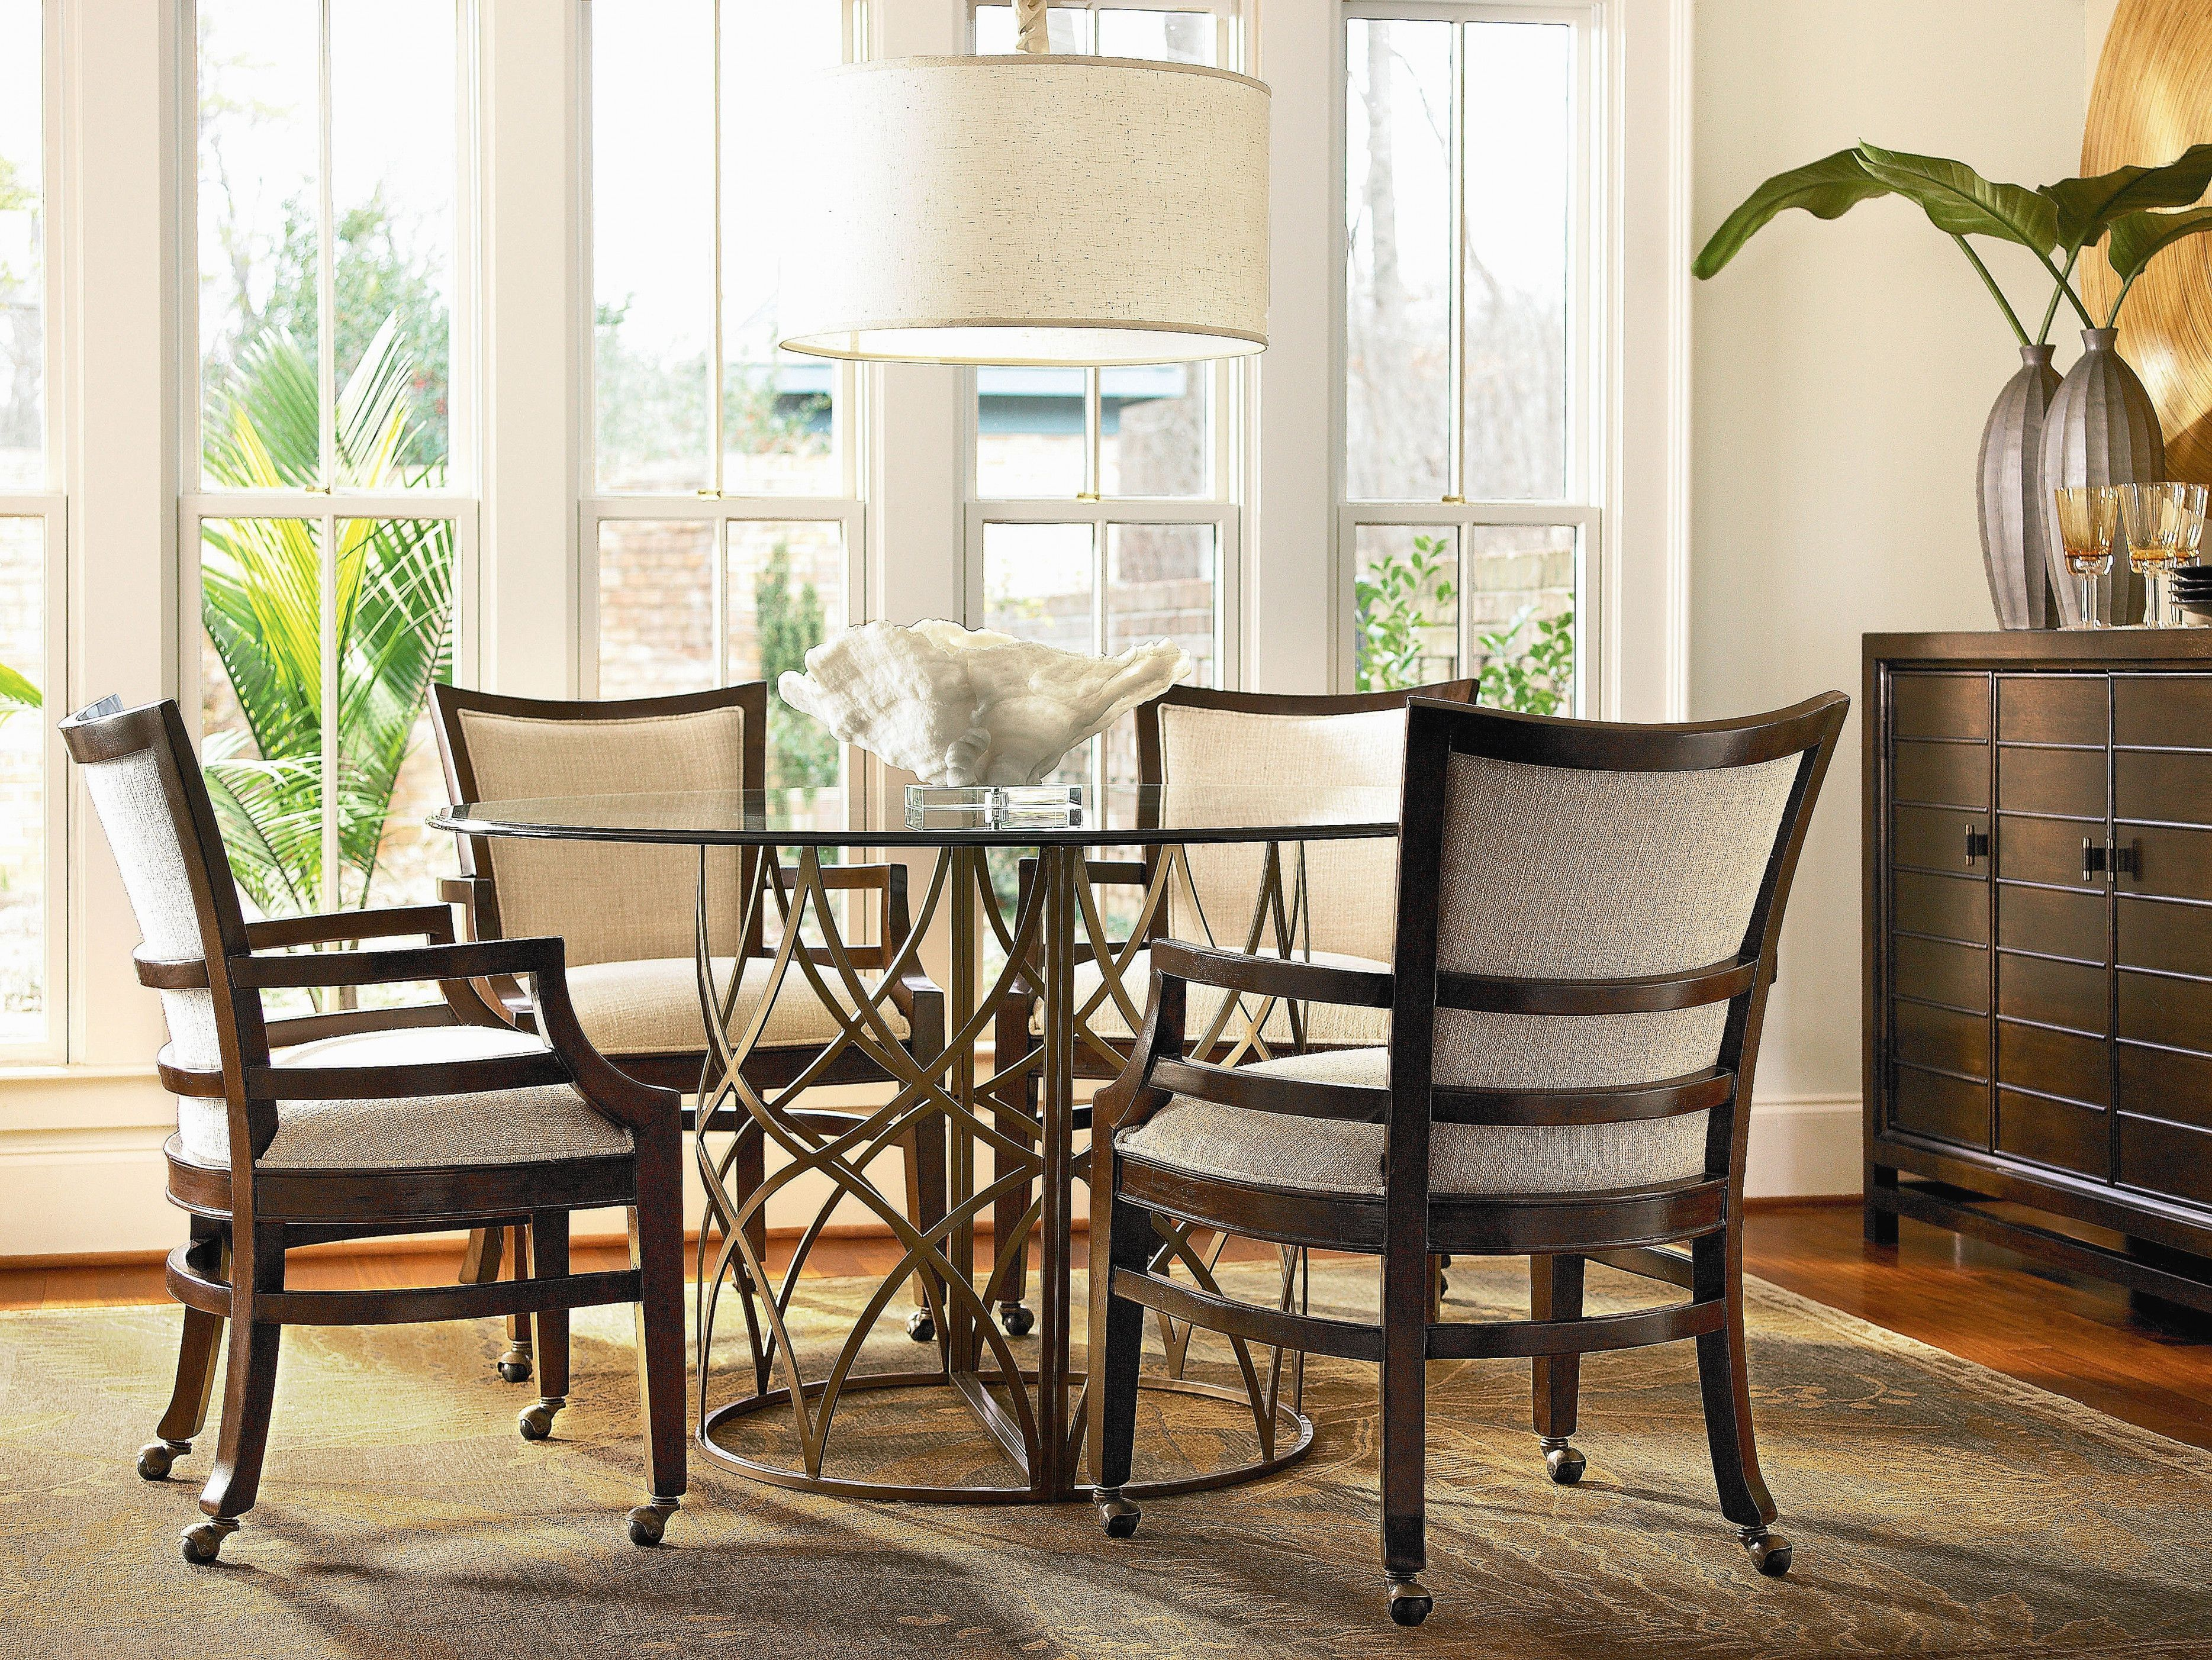 Dining Room Table Chairs Casters Home Decorating Interior Design For Dining Room Remodel Dining Room Sets Kitchen Table Chairs